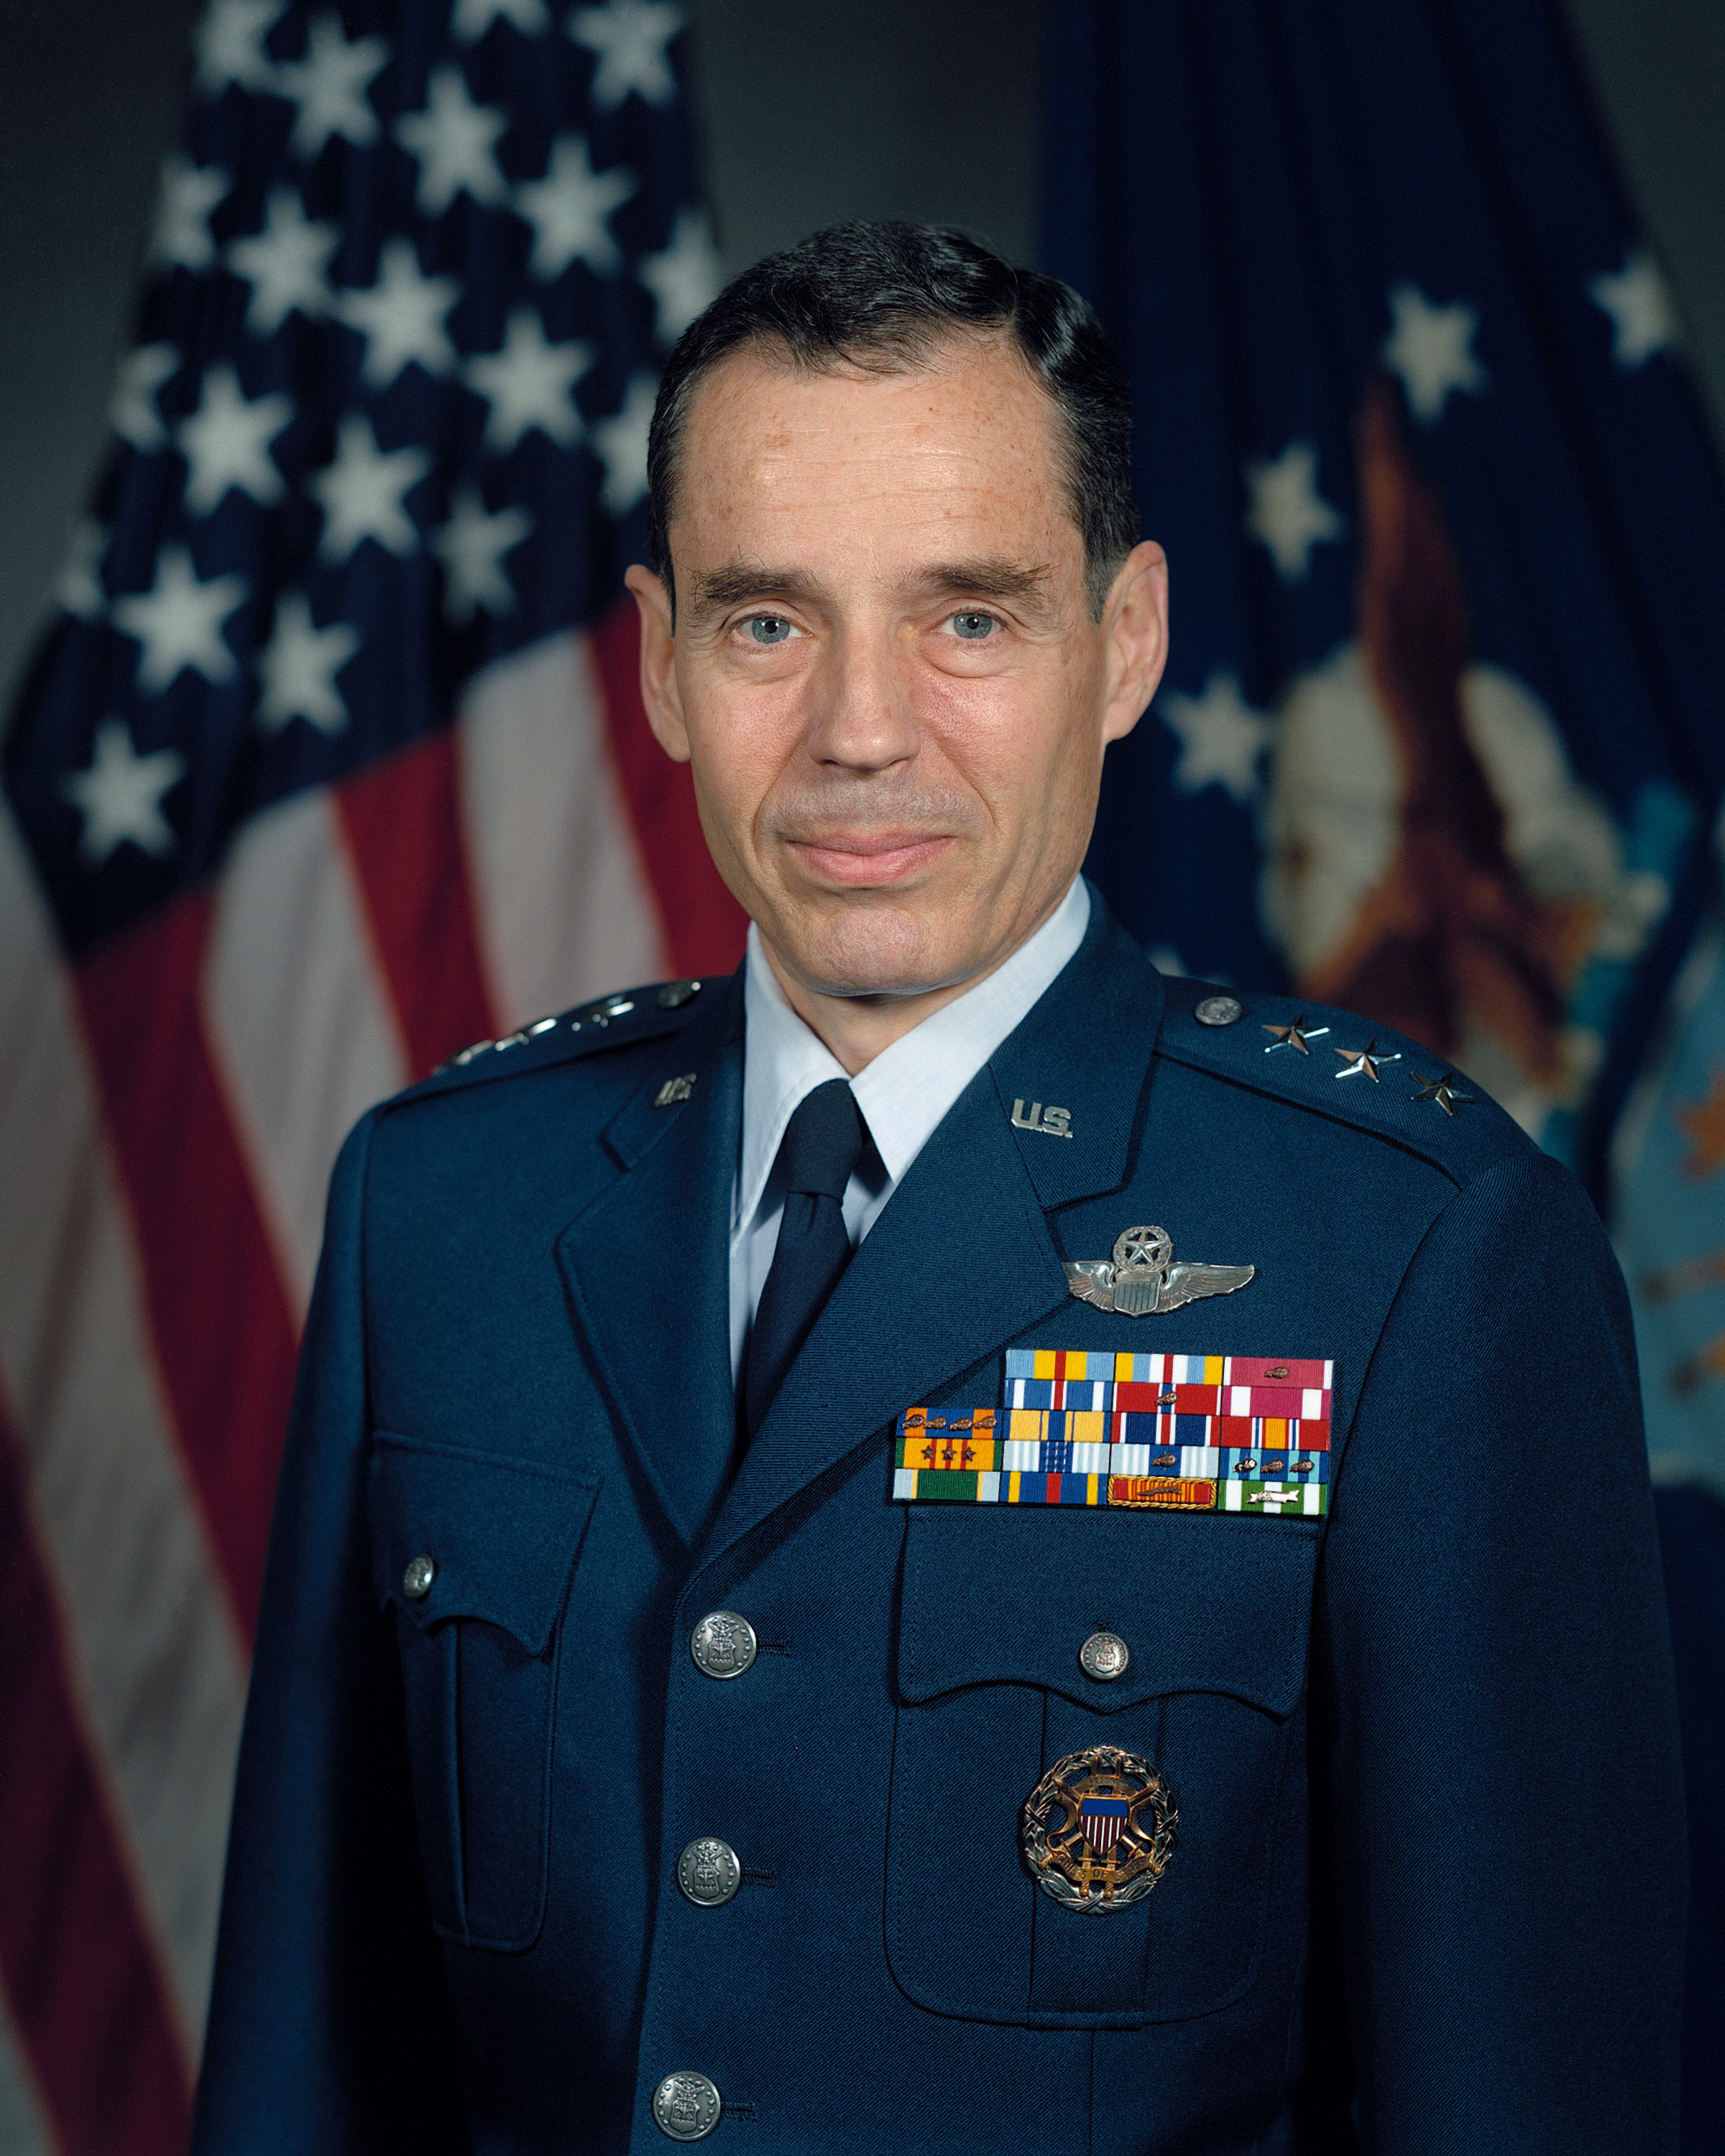 Air Force Academy Dean Of Faculty Announces Retirement: List Of United States Air Force Academy Alumni